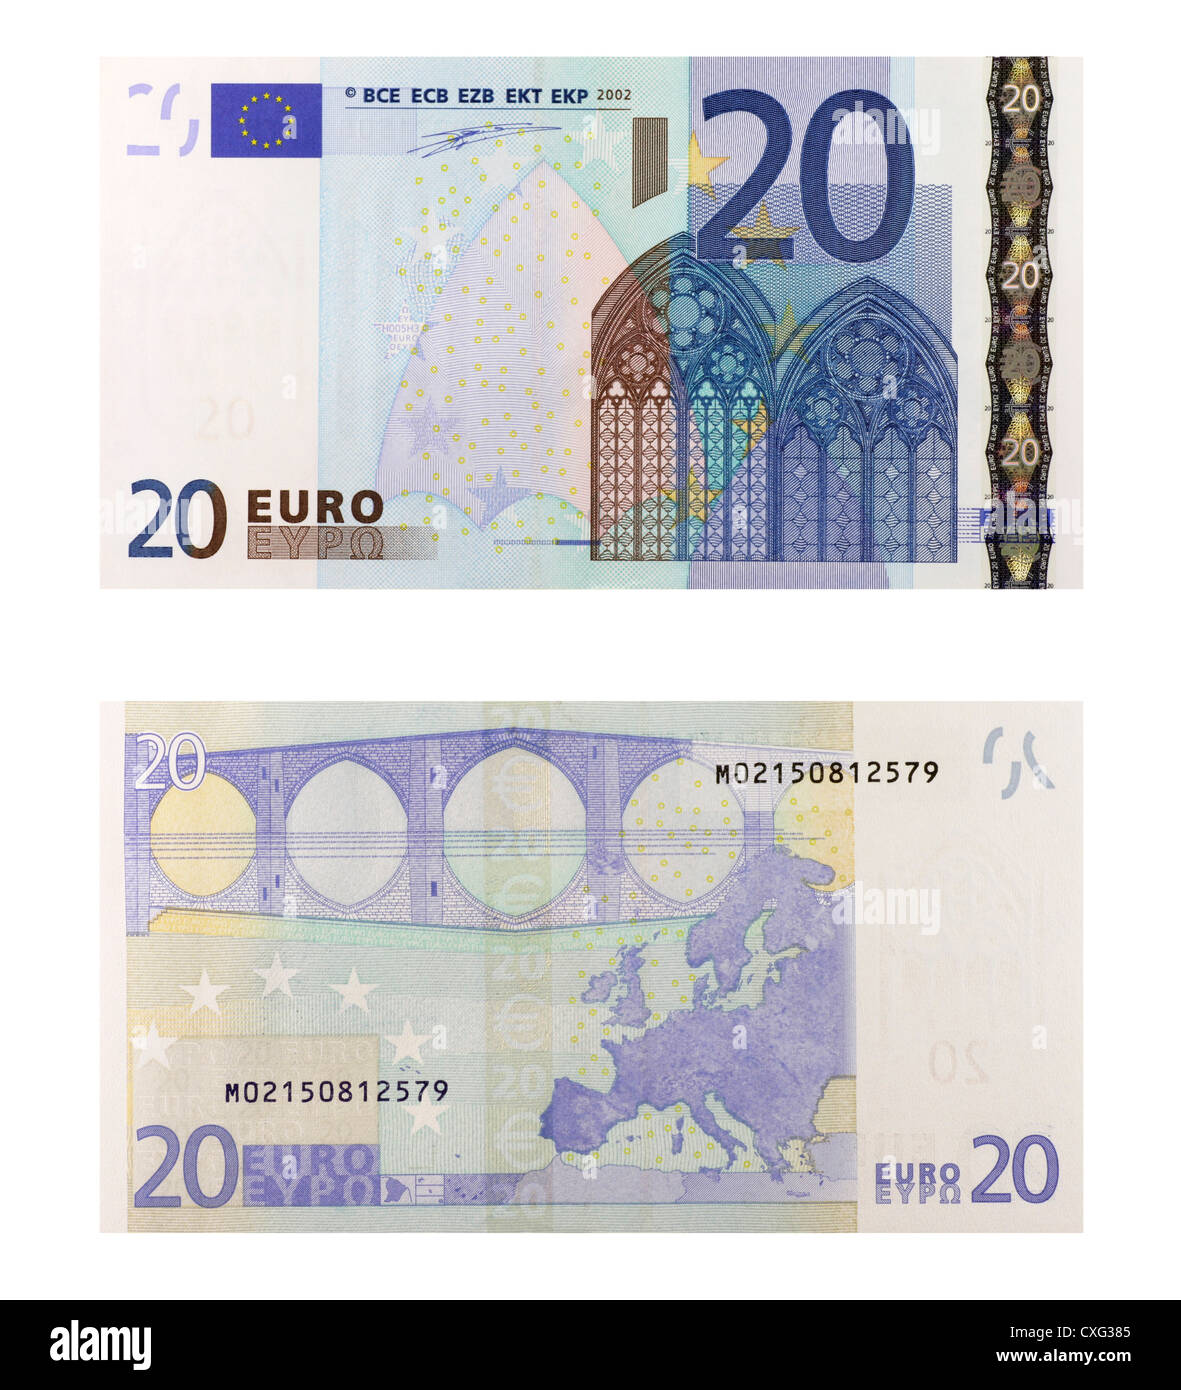 20 euro banknote isolated in white - Stock Image